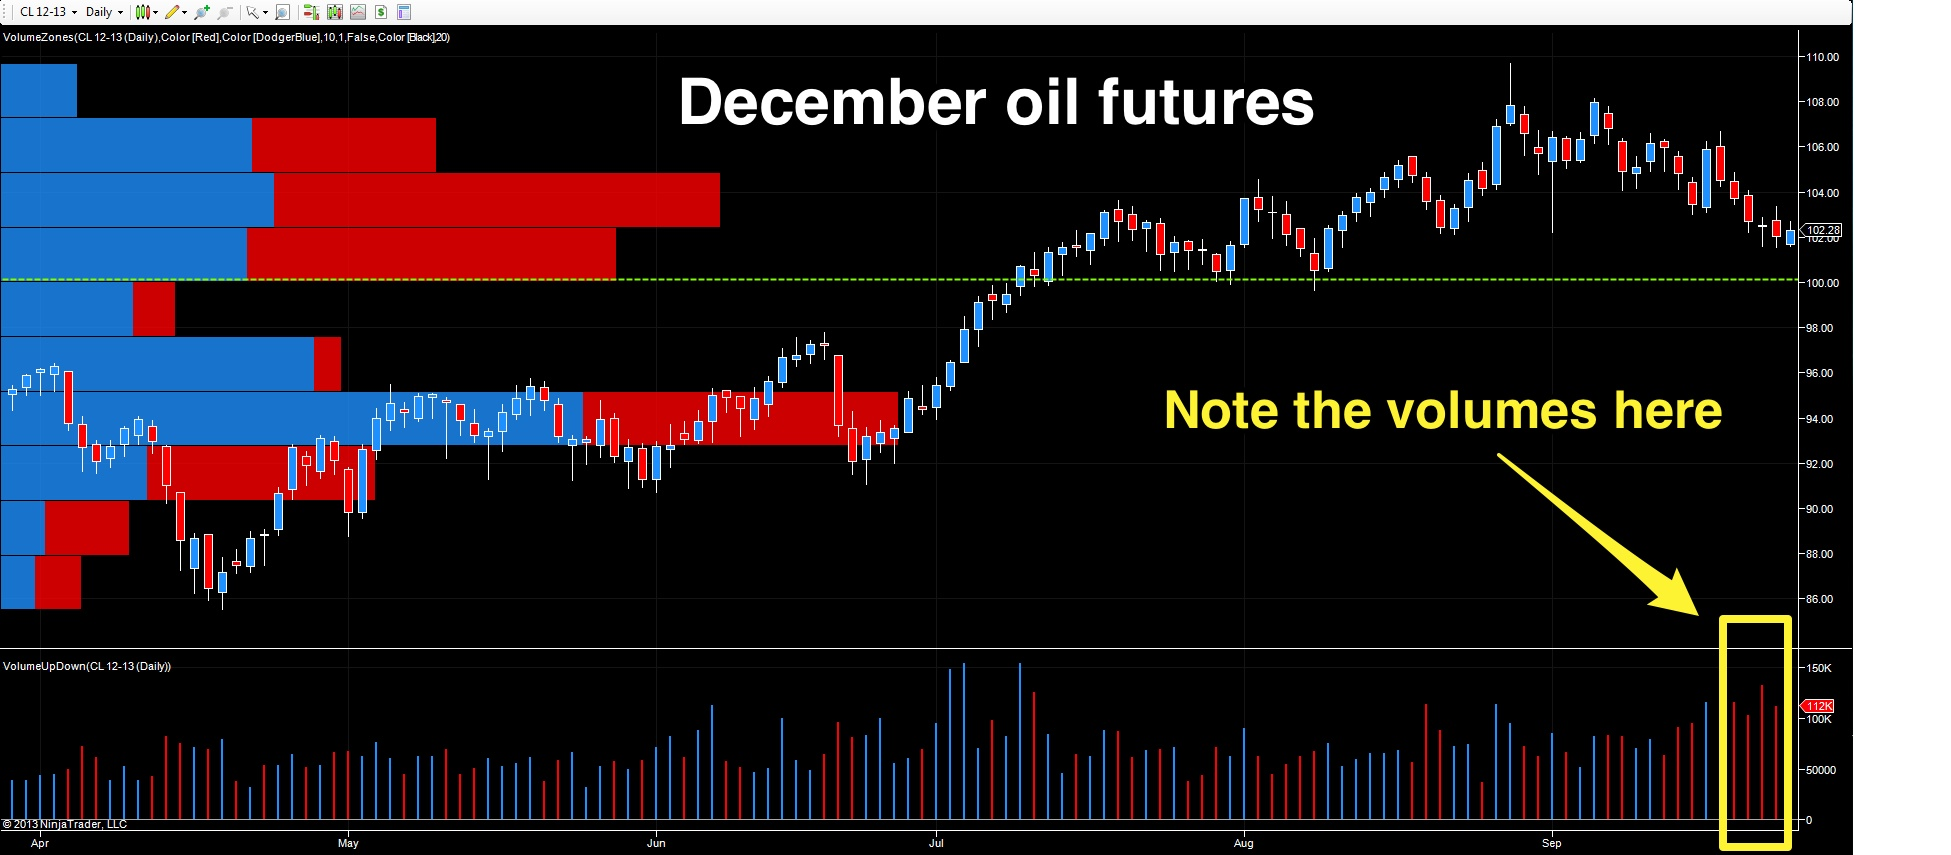 December Crude Oil Futures - Daily Chart